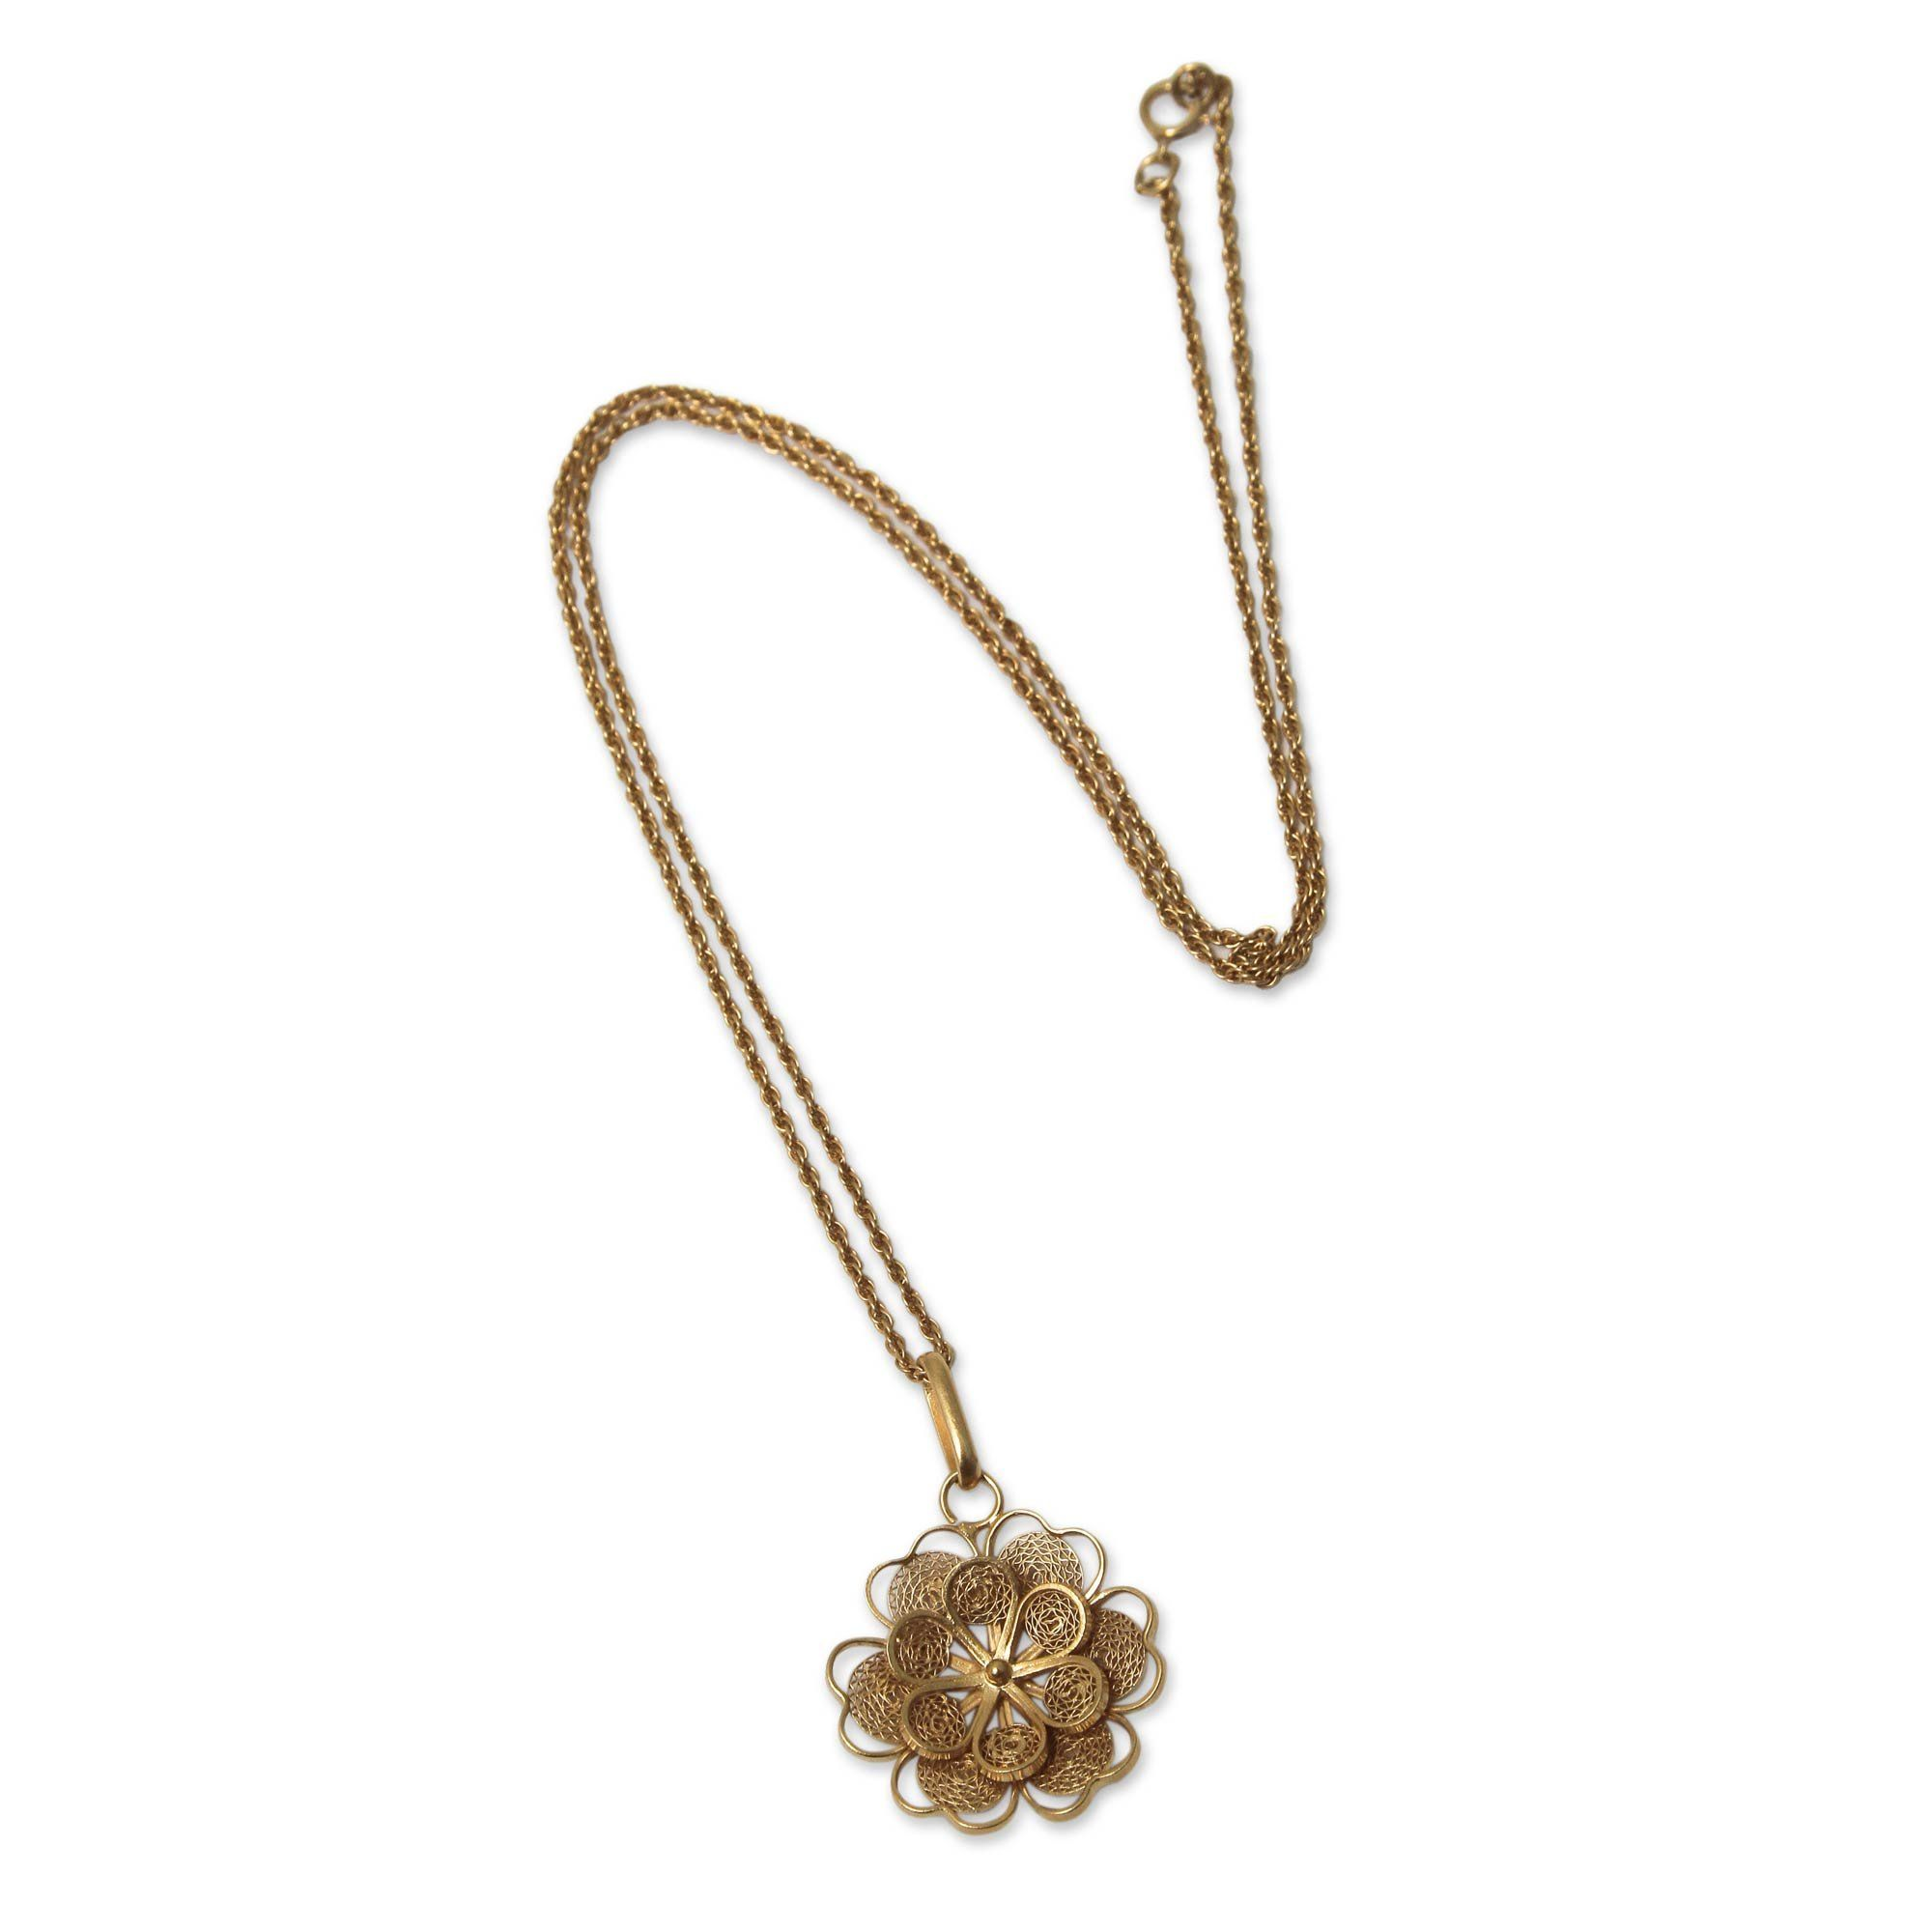 NOVICA k Yellow Gold Plated Sterling Silver Pendant Necklace